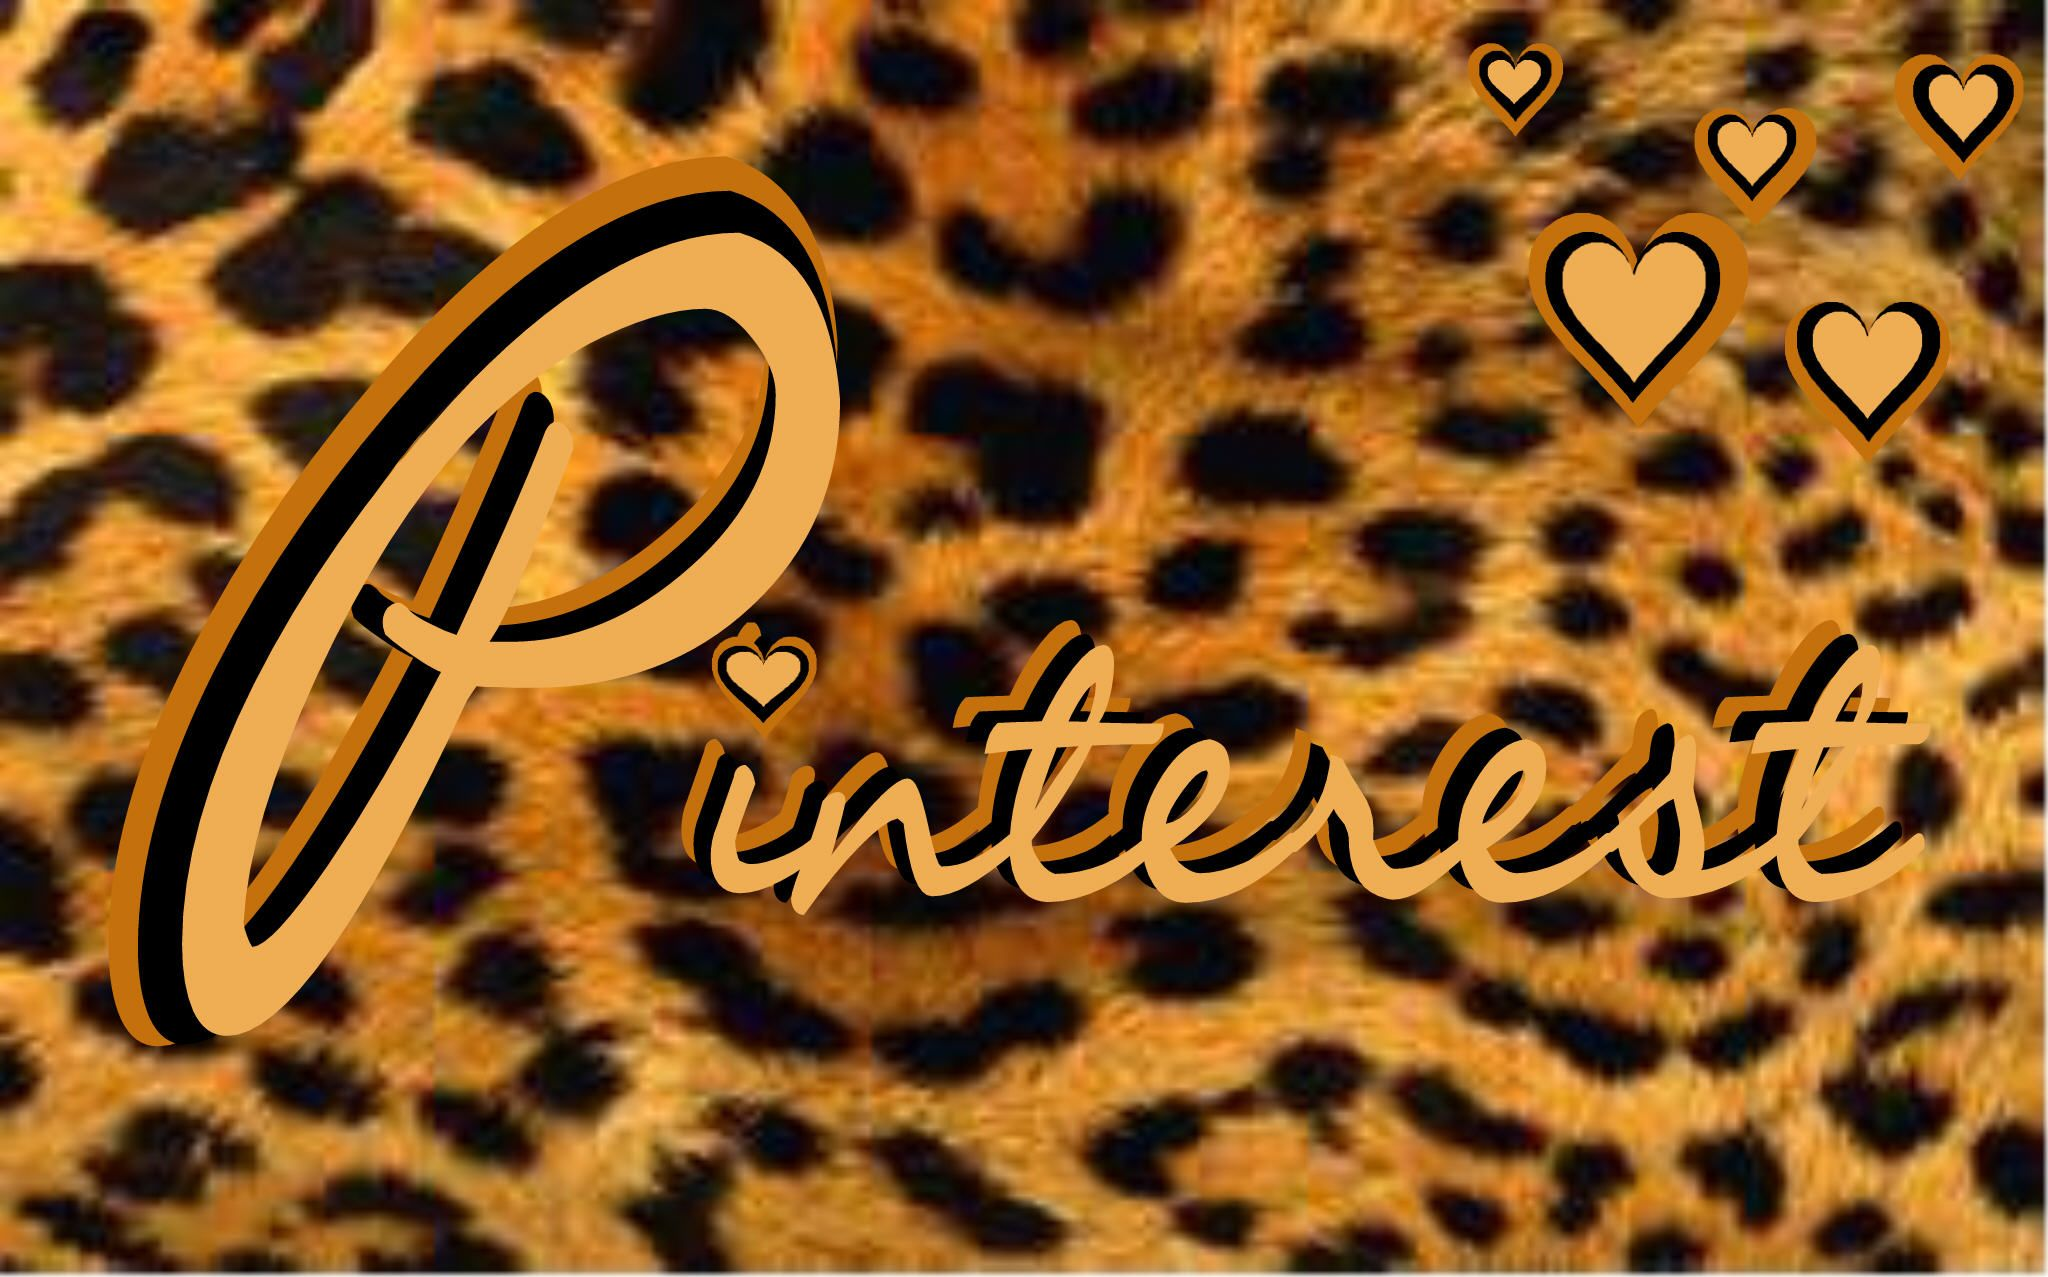 I'm wild about Sharing pins, NO PIN LIMITS! Check out my Crazy for Leopard Prints board and Pin all you want! Susie ♥ https://www.pinterest.com/susiewoozie23/crazy-for-leopard-prints/